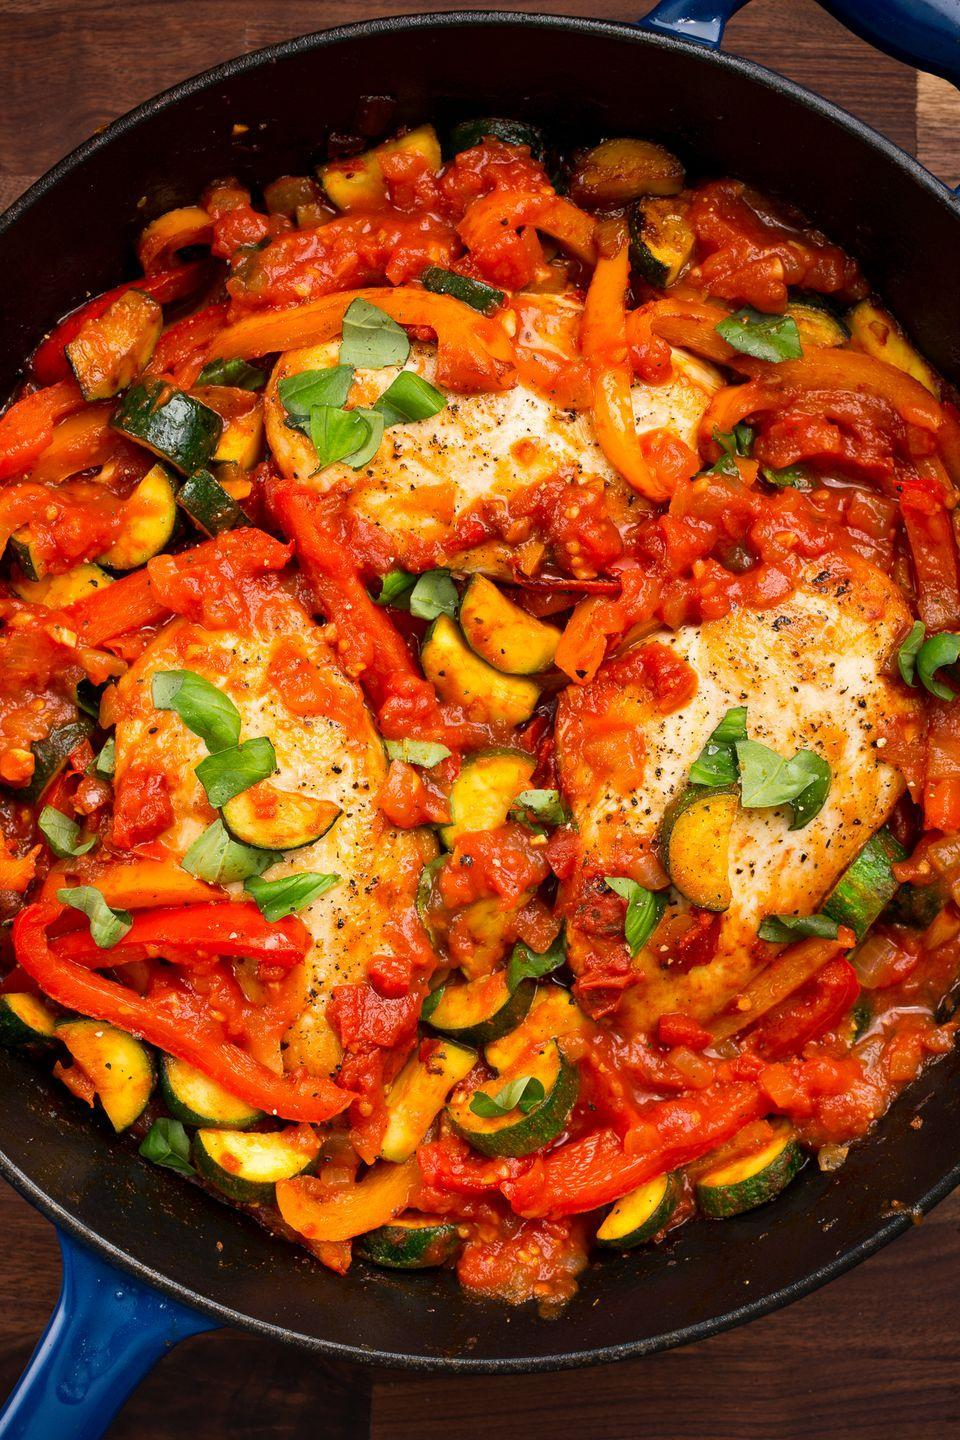 """<p>The idea of making dinner for two is to keep it simple but have it still taste special. This dish does the job. </p><p>Get the recipe from <a href=""""https://www.delish.com/cooking/recipe-ideas/recipes/a47442/italian-chicken-skillet-recipe/"""" rel=""""nofollow noopener"""" target=""""_blank"""" data-ylk=""""slk:Delish"""" class=""""link rapid-noclick-resp"""">Delish</a>. </p>"""